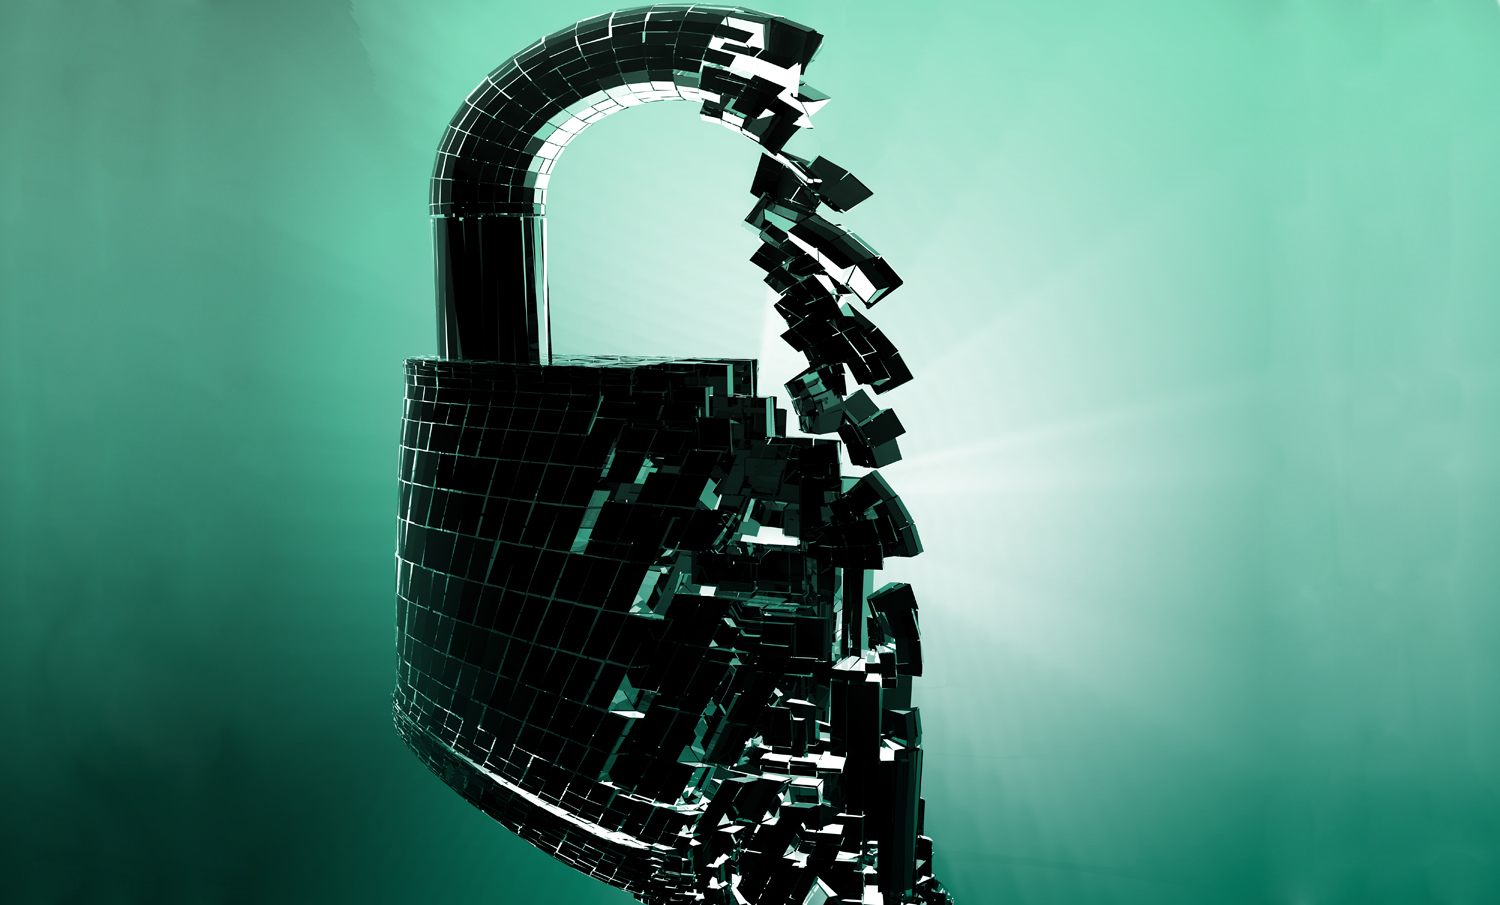 padlock-security-